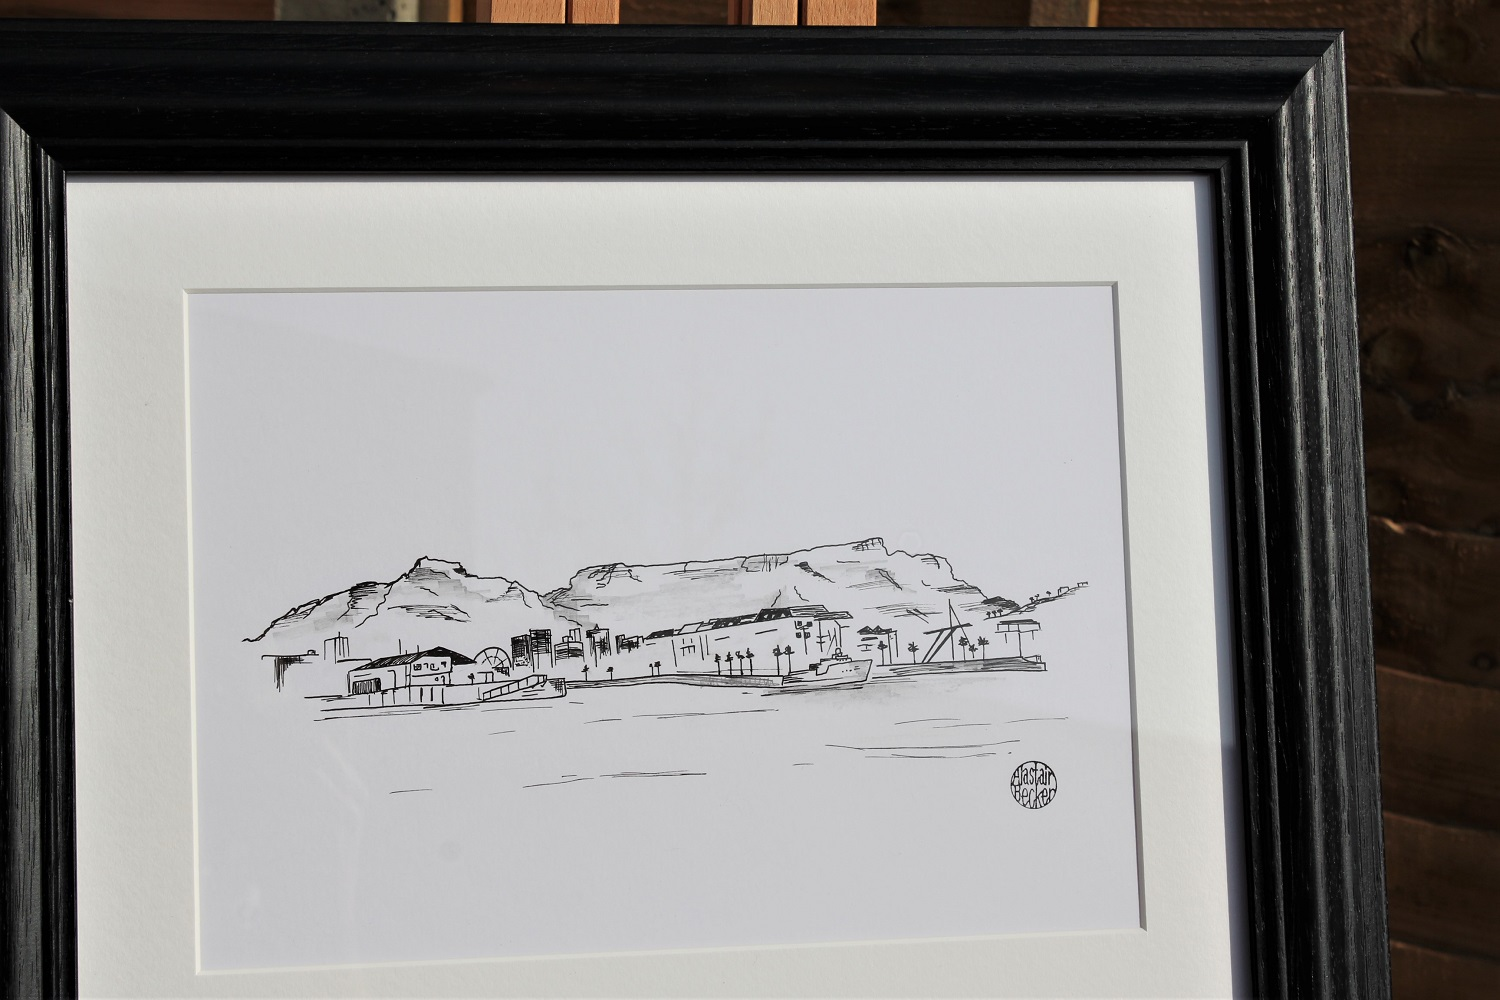 Table Mountain - 3 of 5 commissioned artworks for a couple to remember their travels around the world.